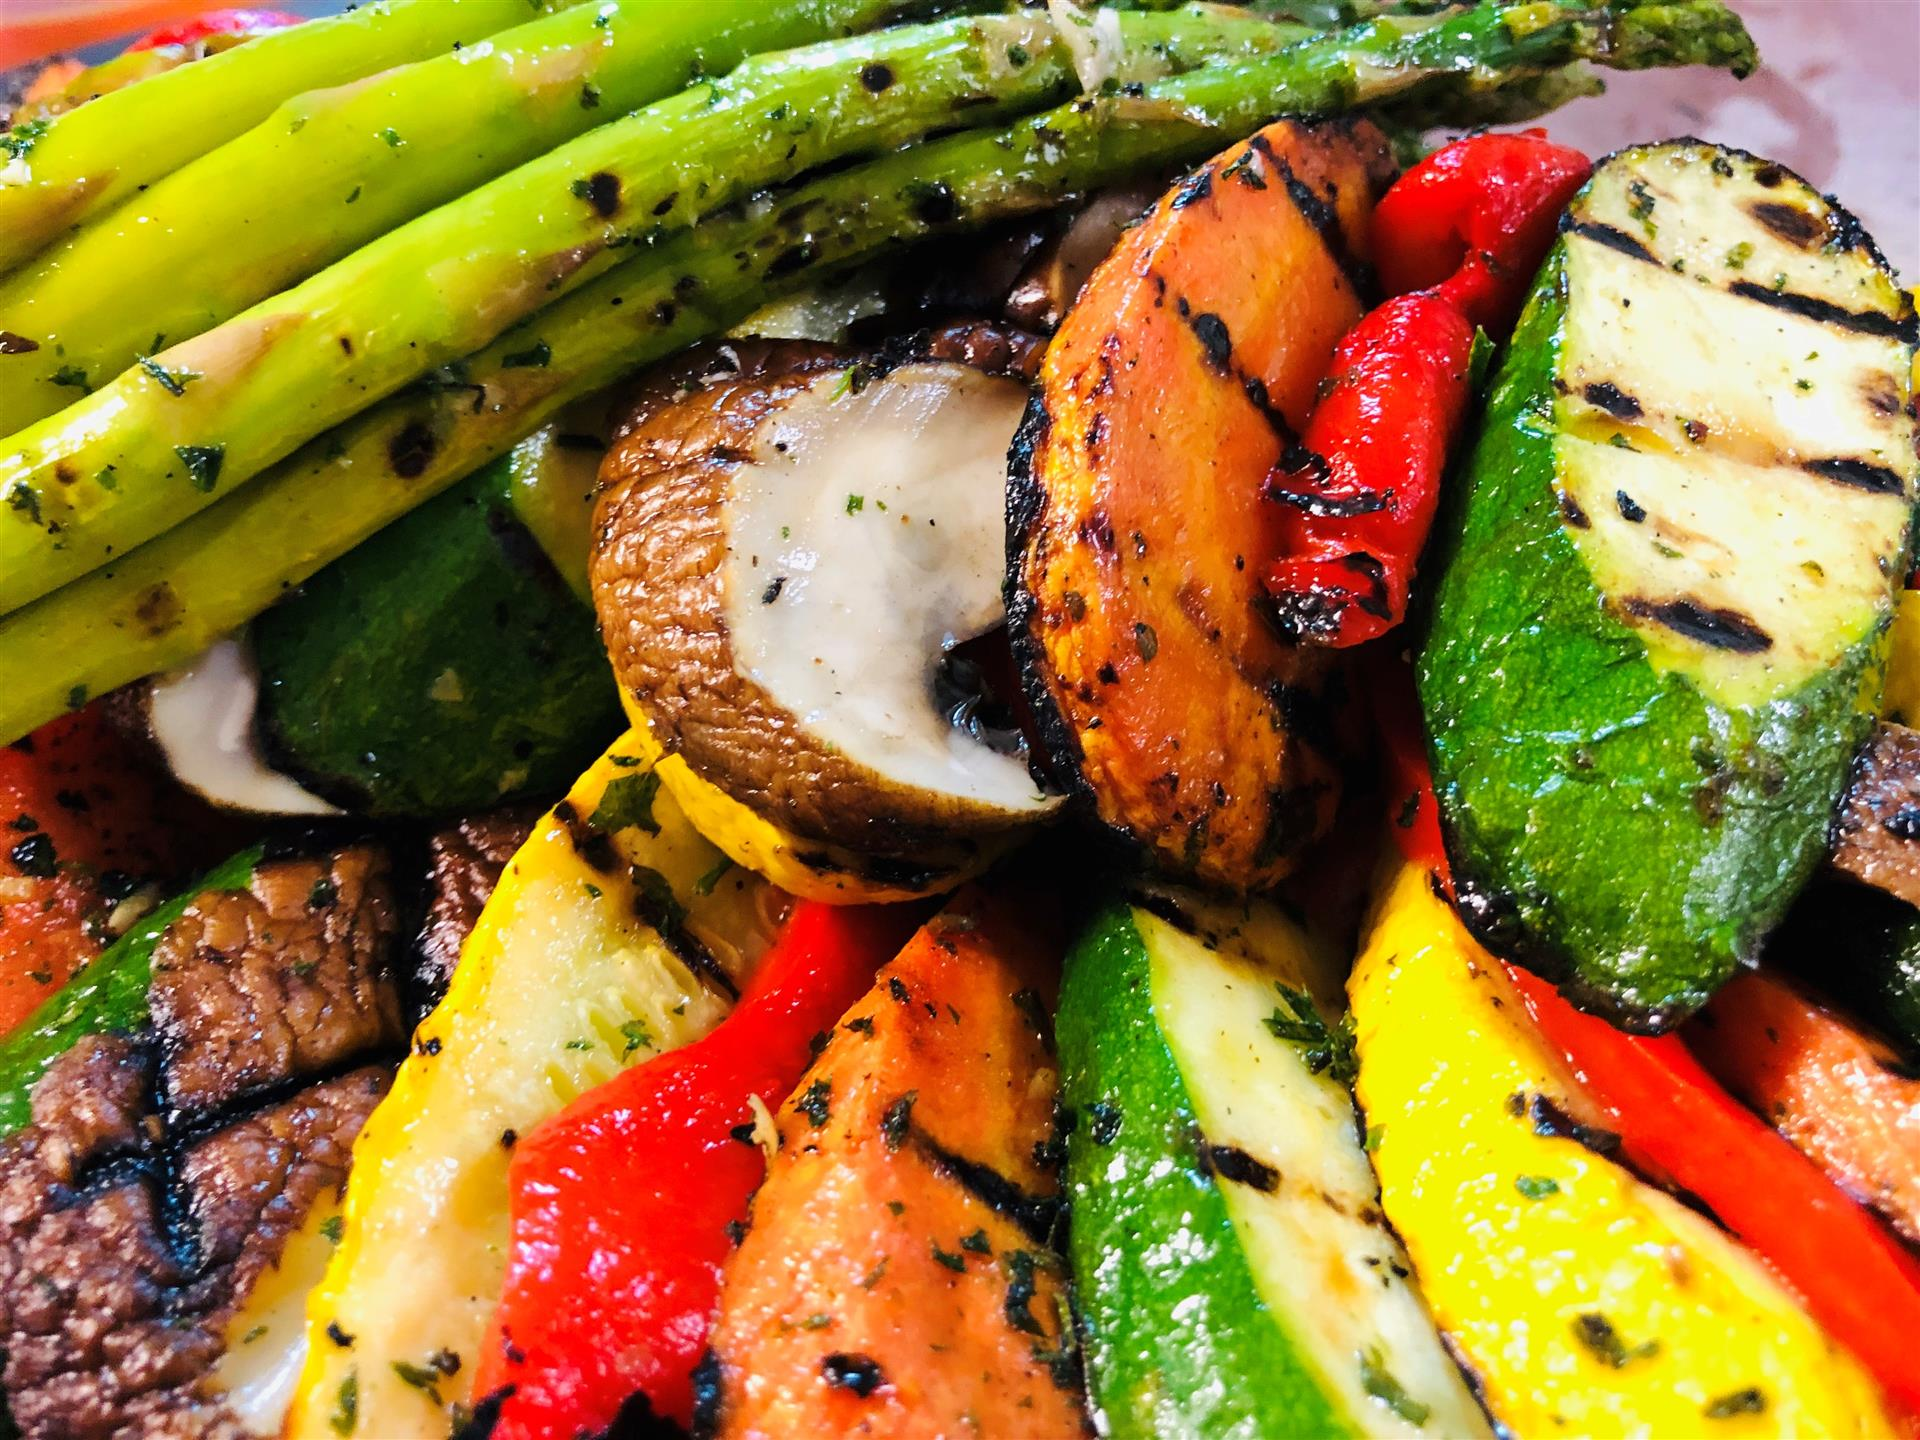 assorted grilled vegetables including asparagus, zucchini, carrot and potato